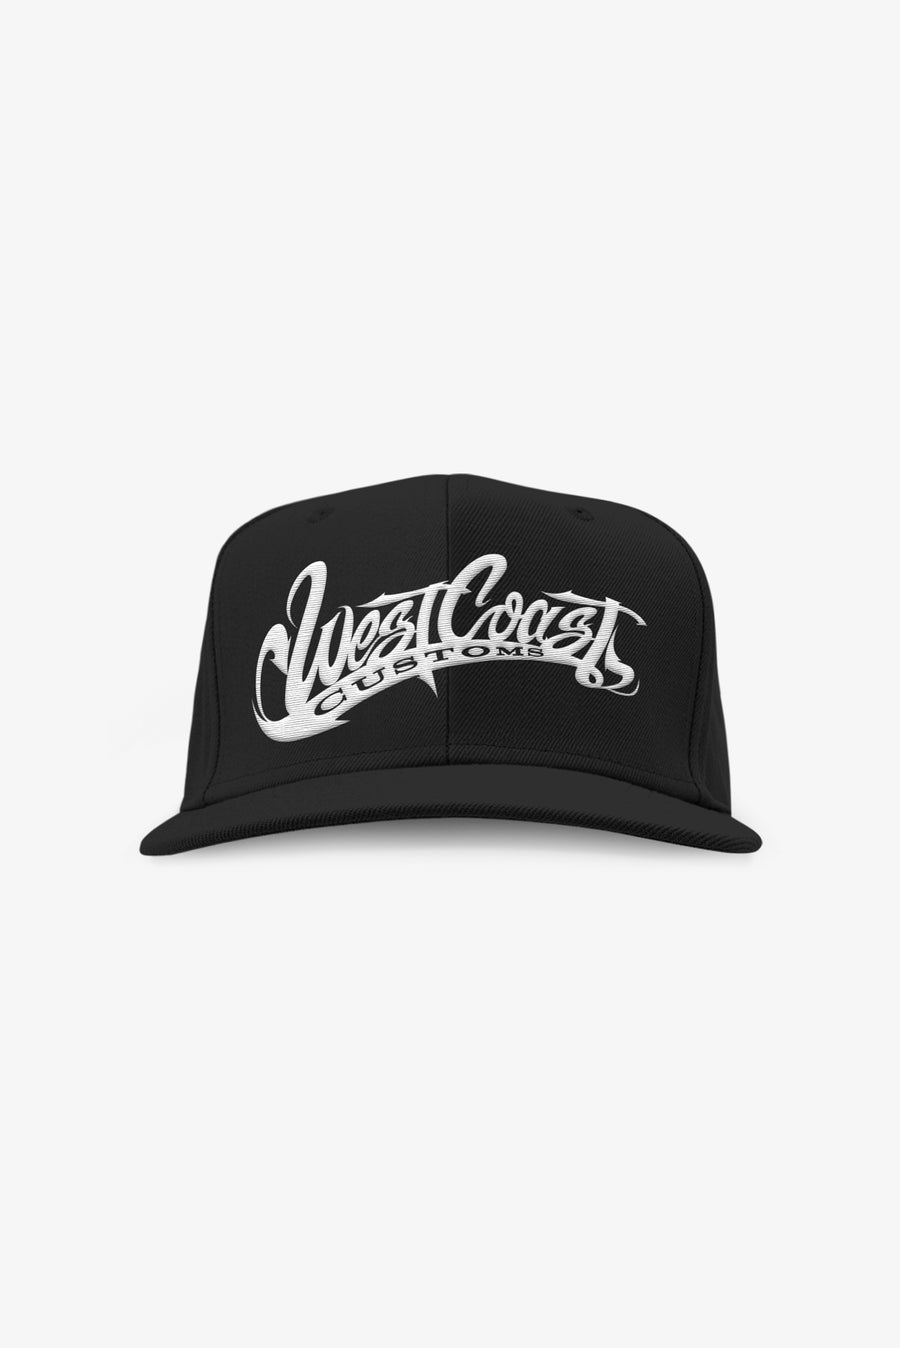 West Coast Customs Black Snapback